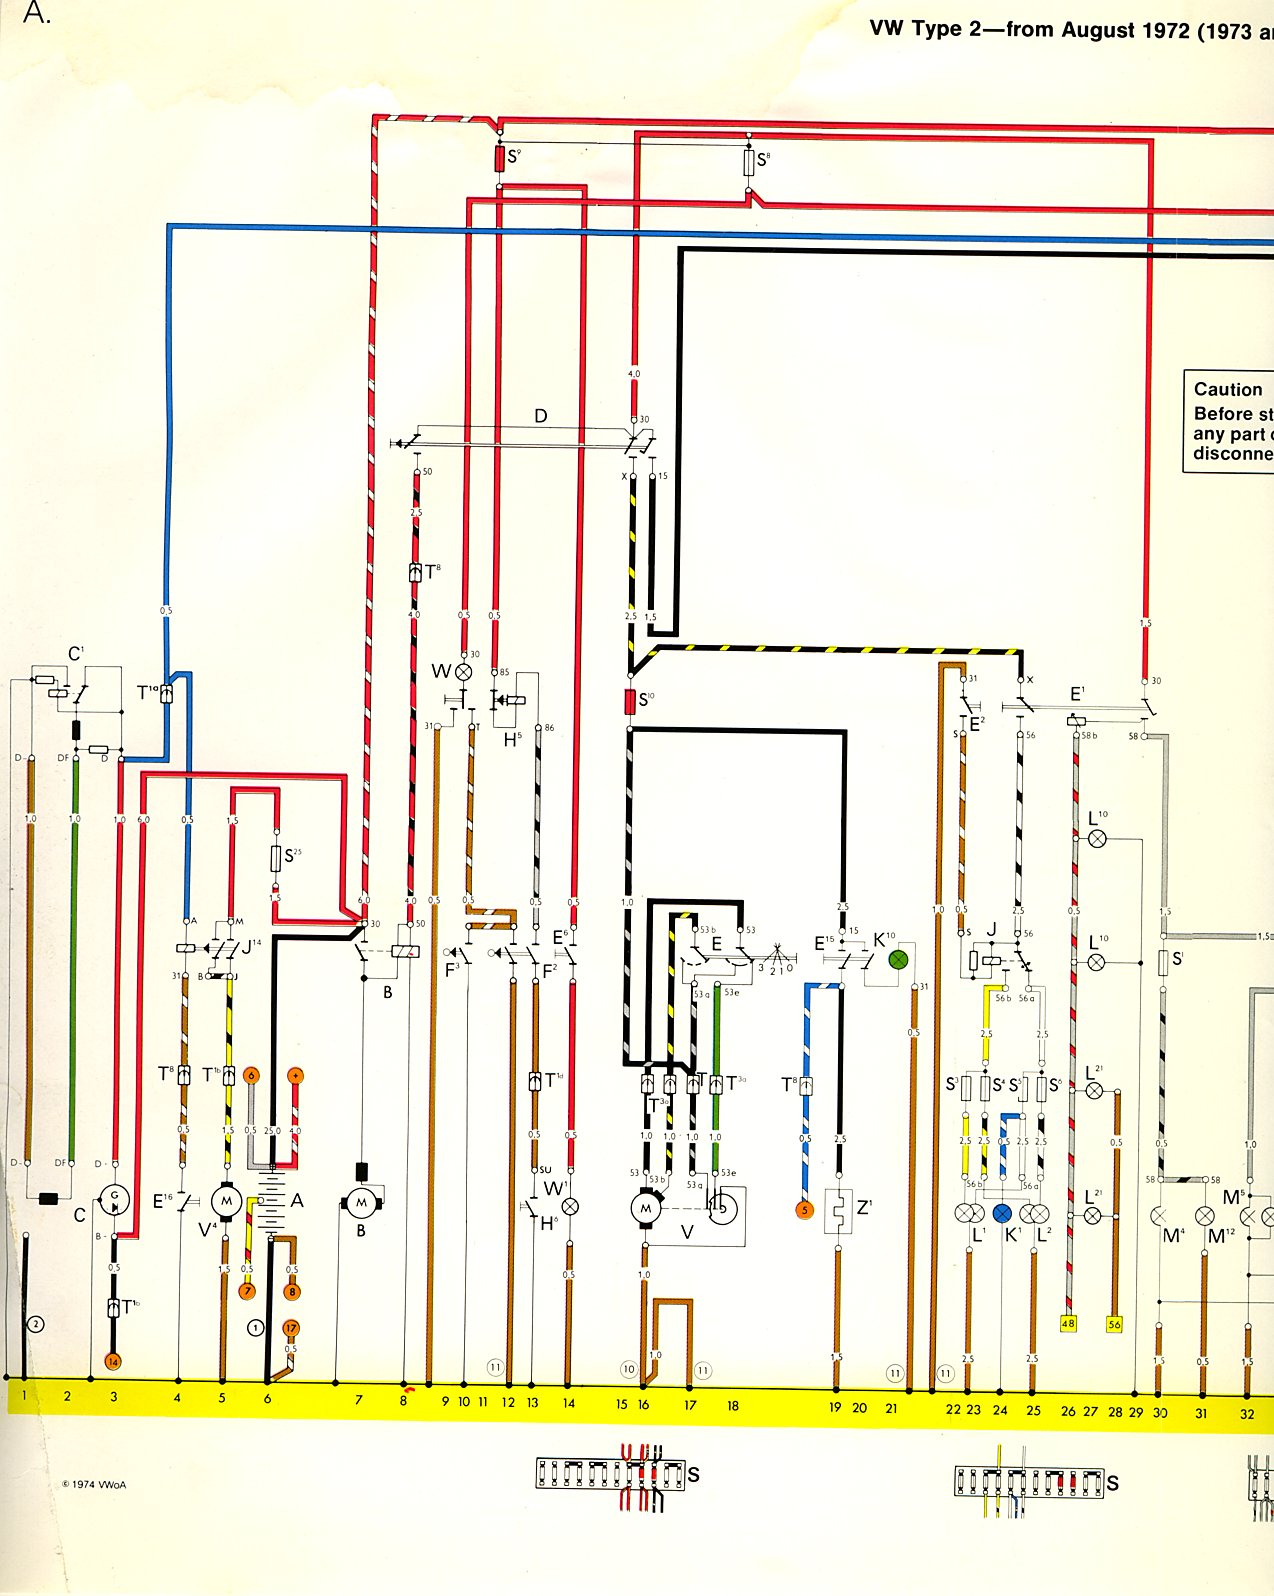 baybus_7374a 1973 74 bus wiring diagram thegoldenbug com vw bus wiring diagram at edmiracle.co